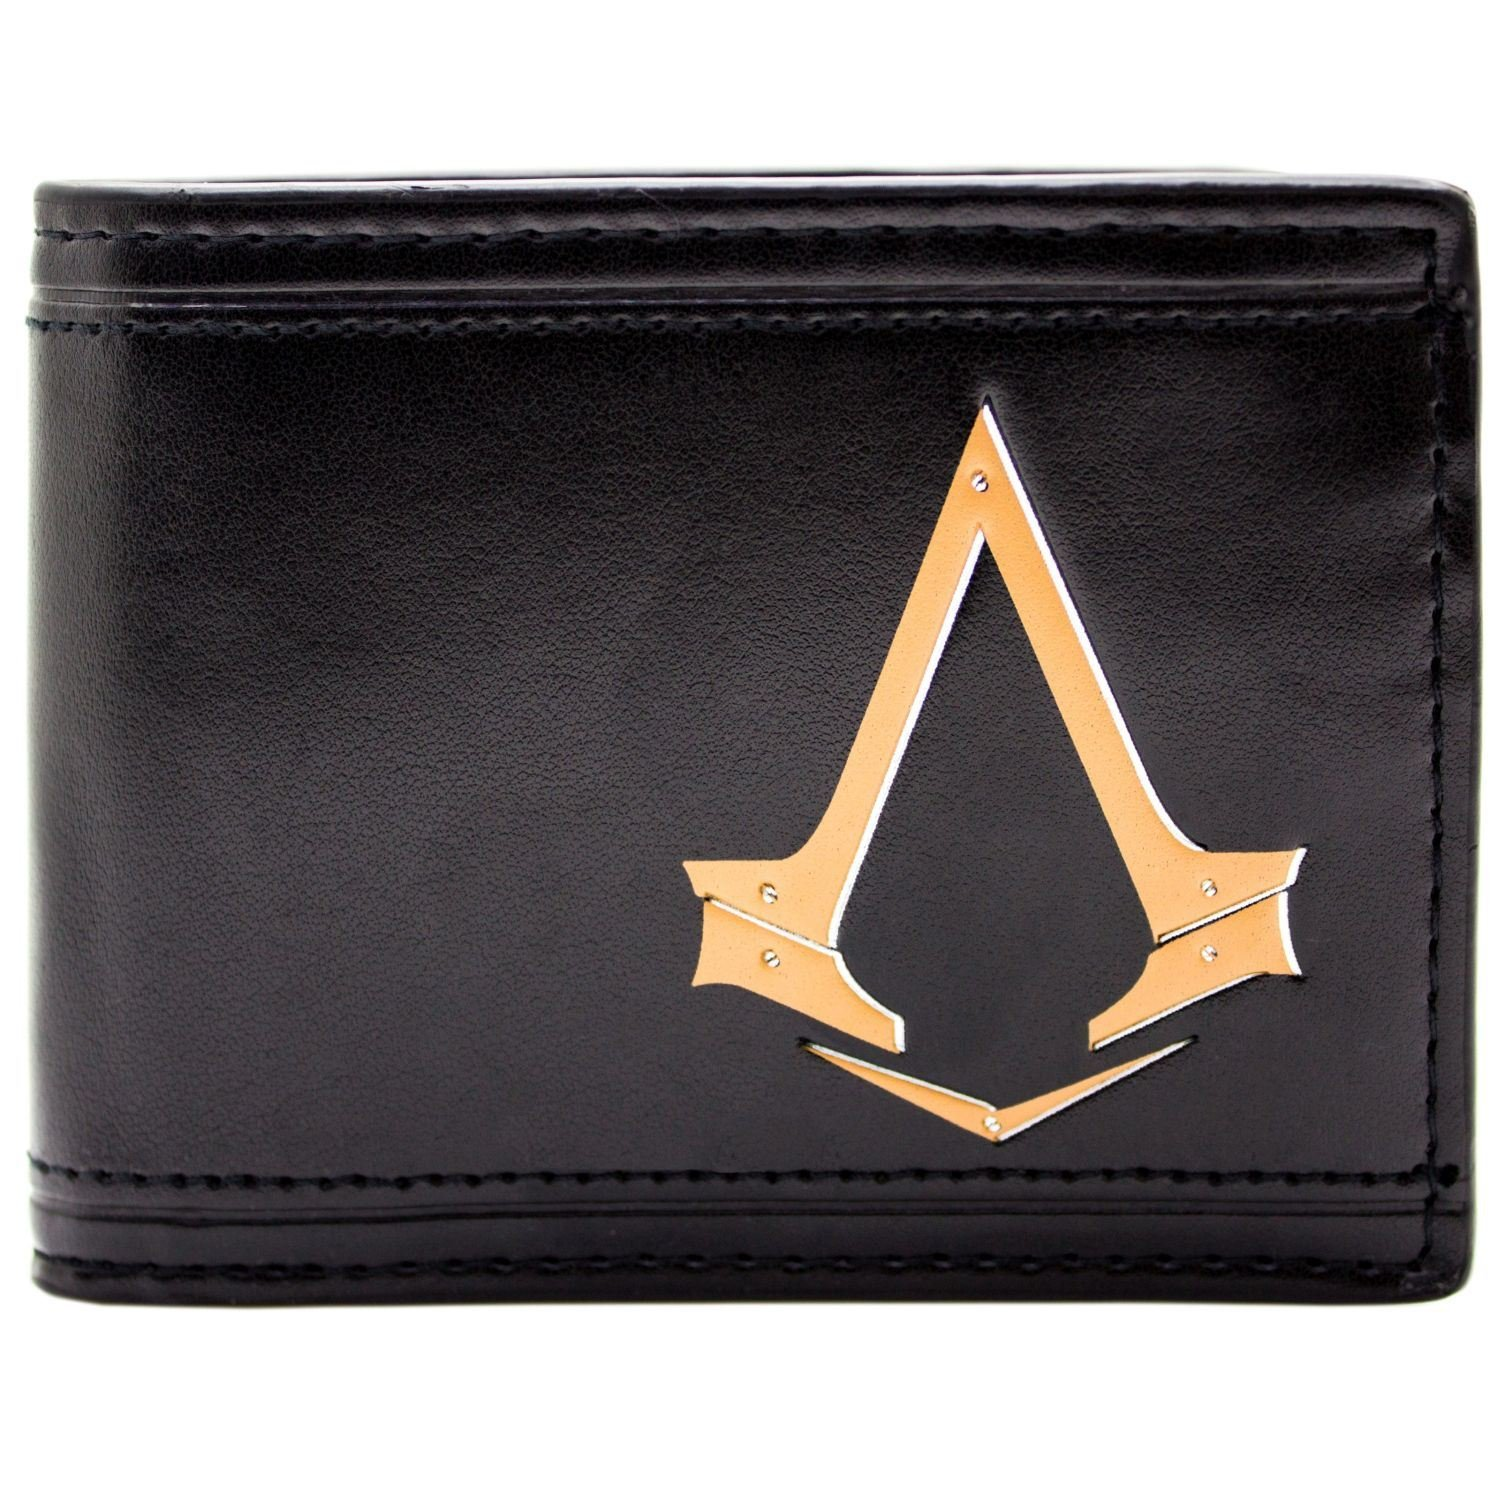 Cartera de Ubisoft Assassins Creed Syndicate Negro 28046